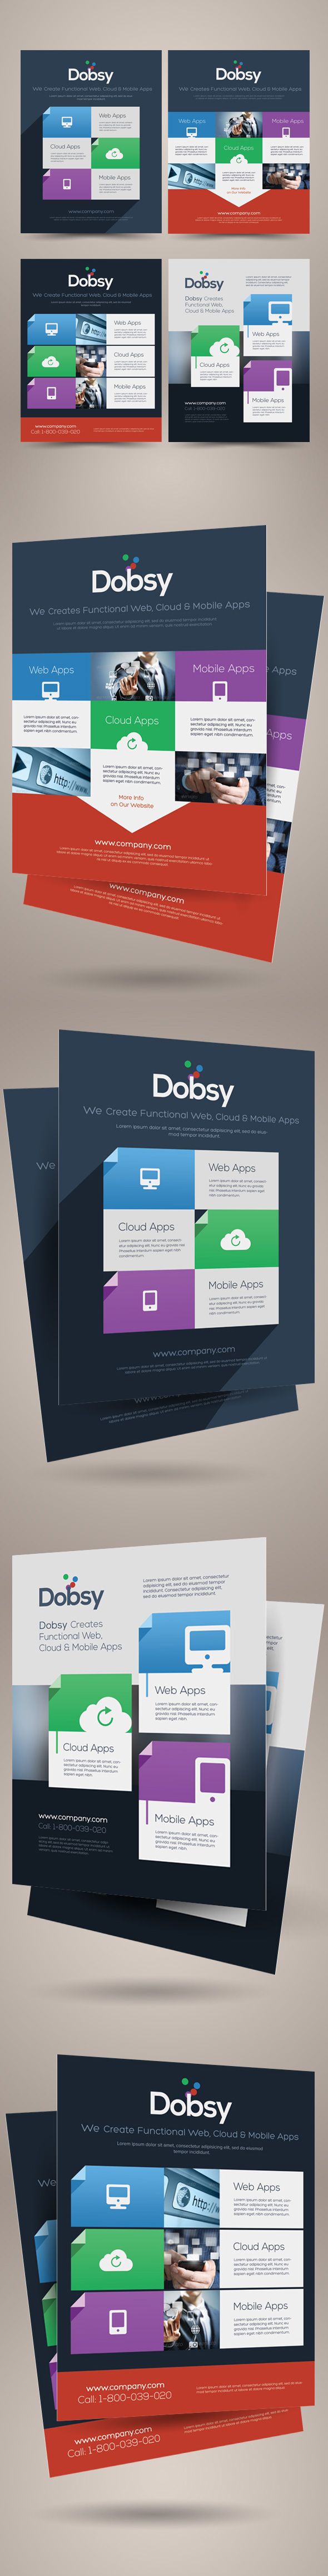 flat design style flyers on behance flat design style flyers are design templates created for on graphic river more info of the templates and how to get the template sourcefiles can be